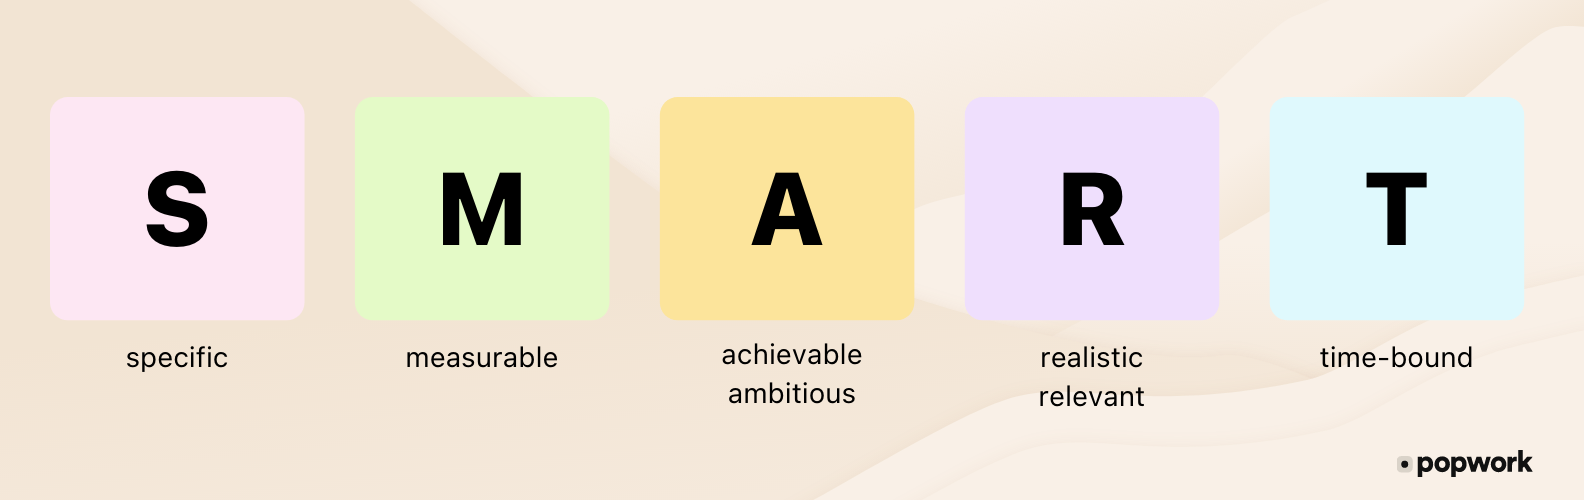 SMART Objectives : Specific, Measurable, Achievable - Ambitious, Realistic, Time-bound